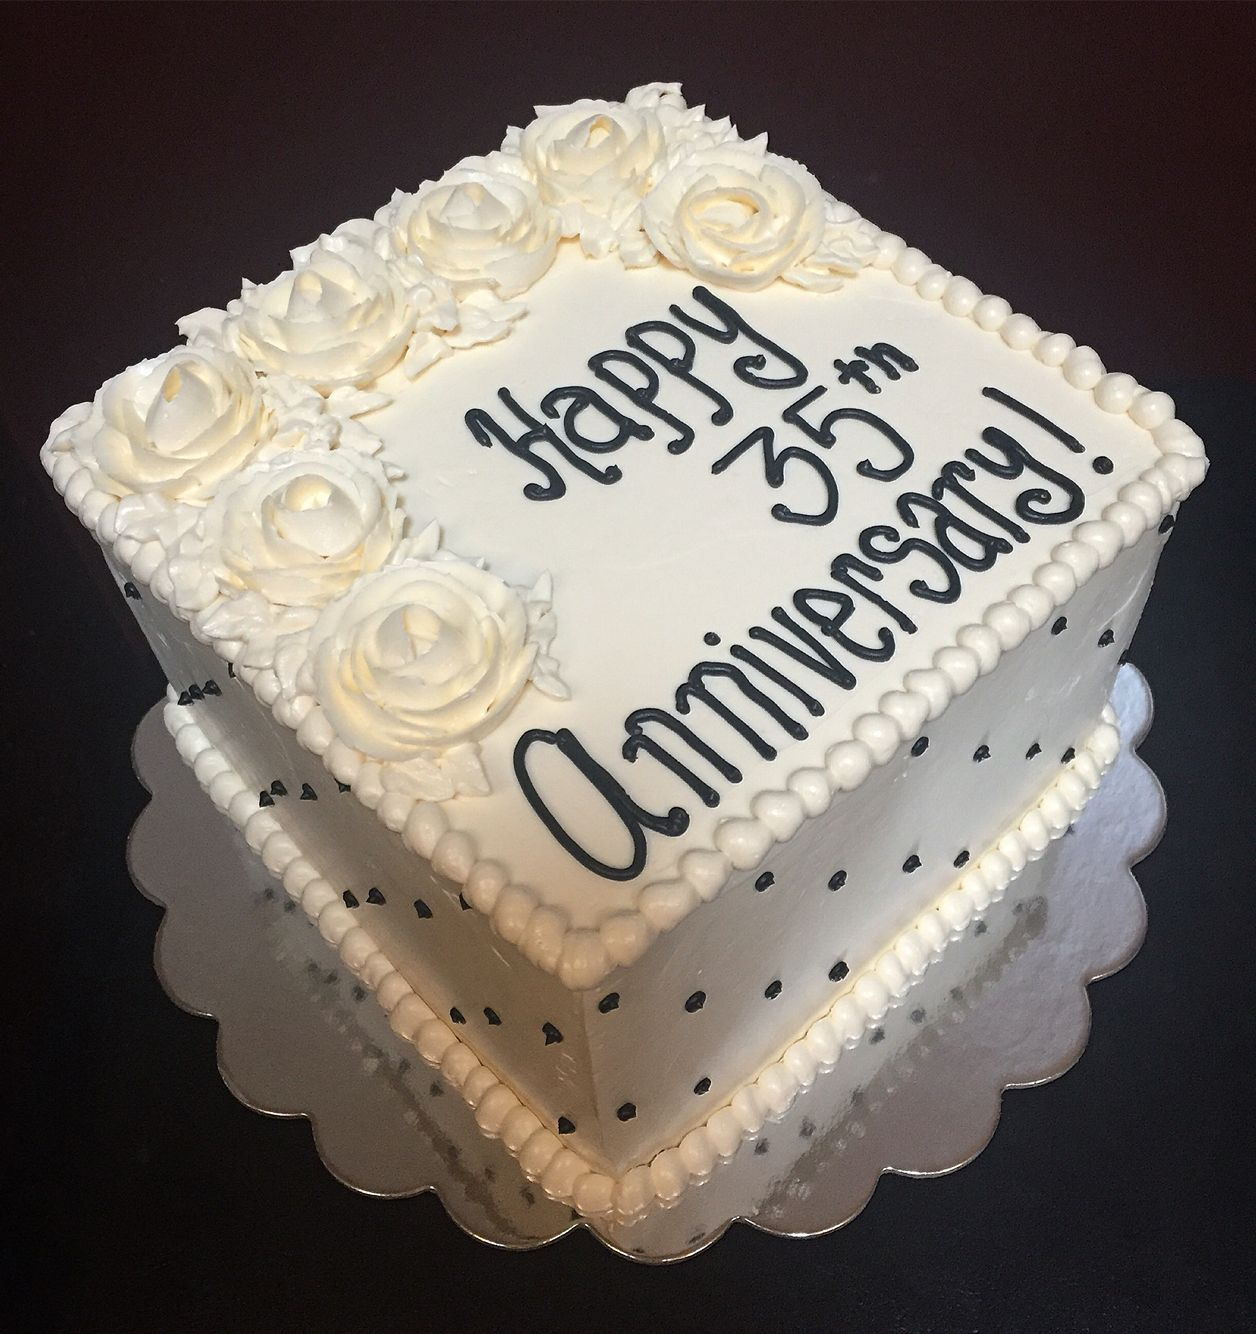 35th Anniversary Cake With Buttercream Roses